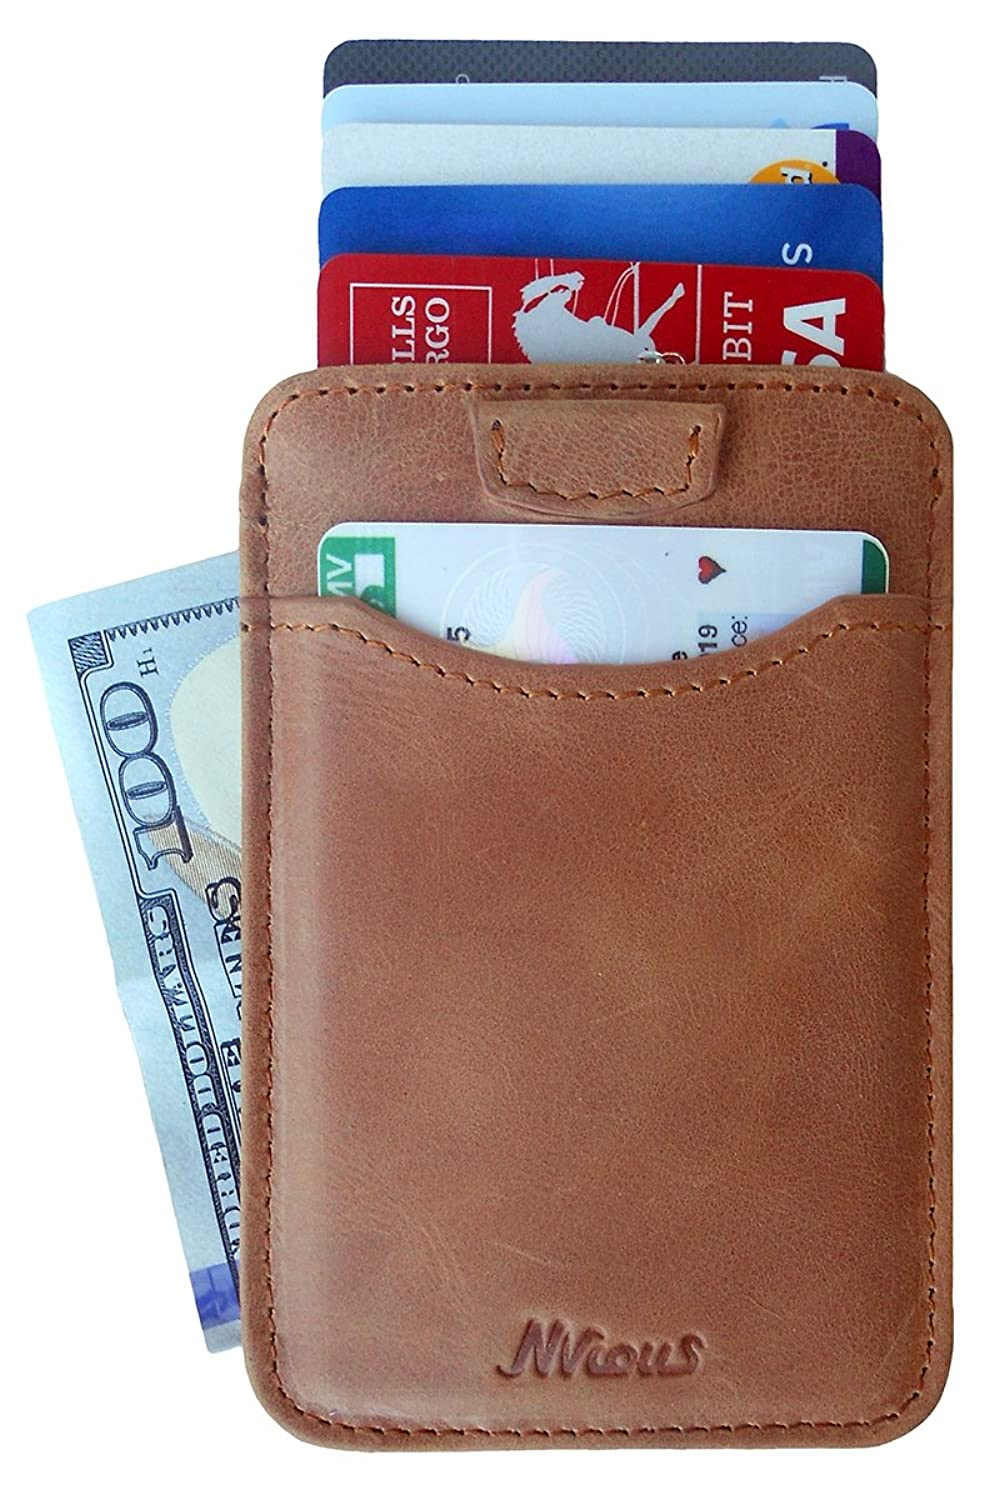 Front Pocket Wallet For Men Minimalist Wallet Men S Slim Wallet